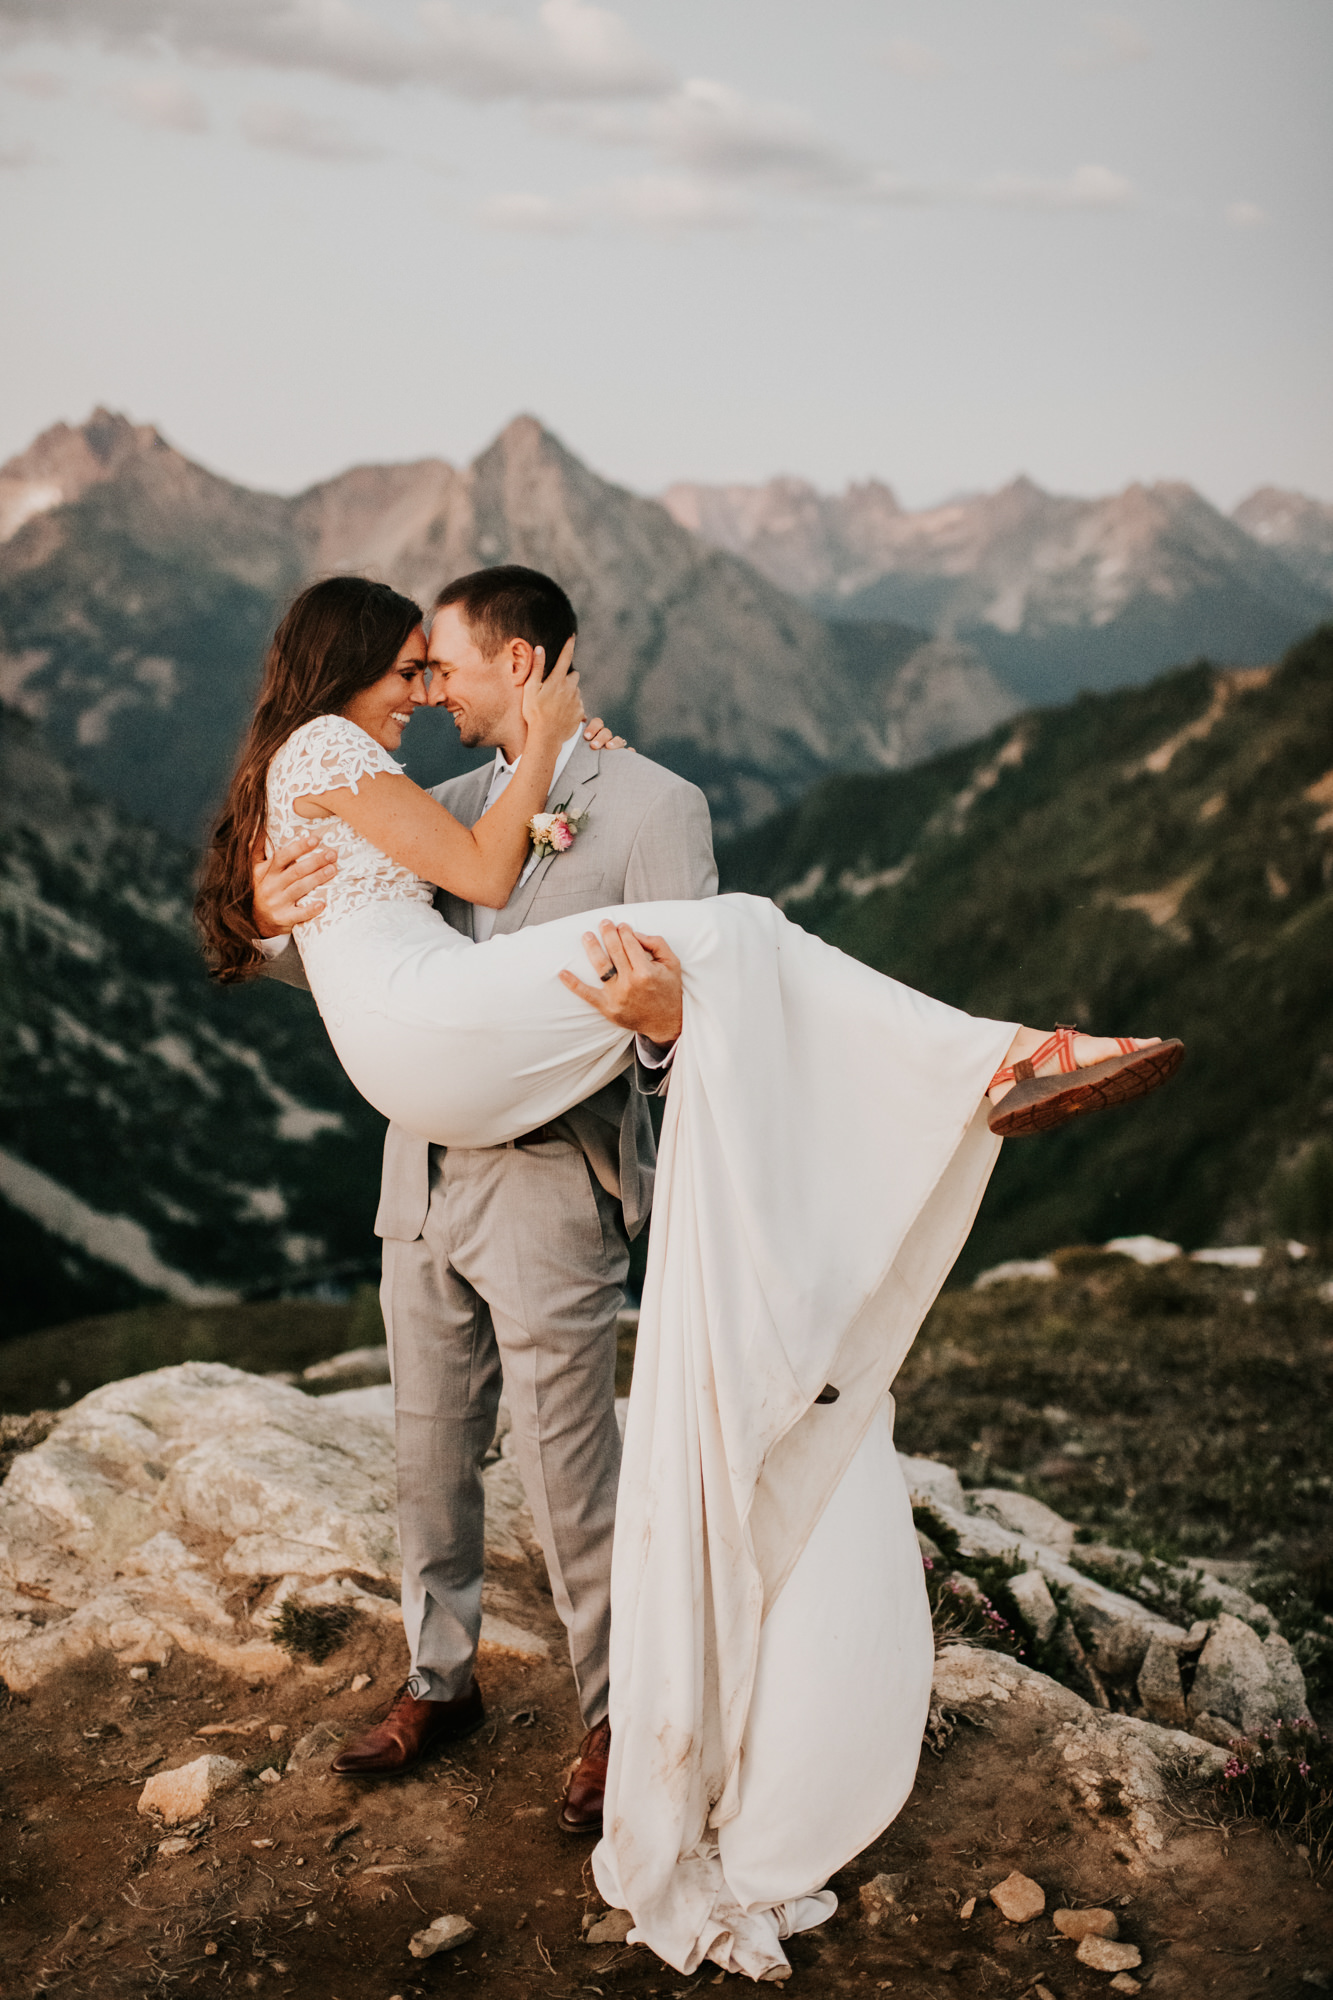 Bride in lace dress swept off feet by groom in grey suit- photo by Nick + Danee